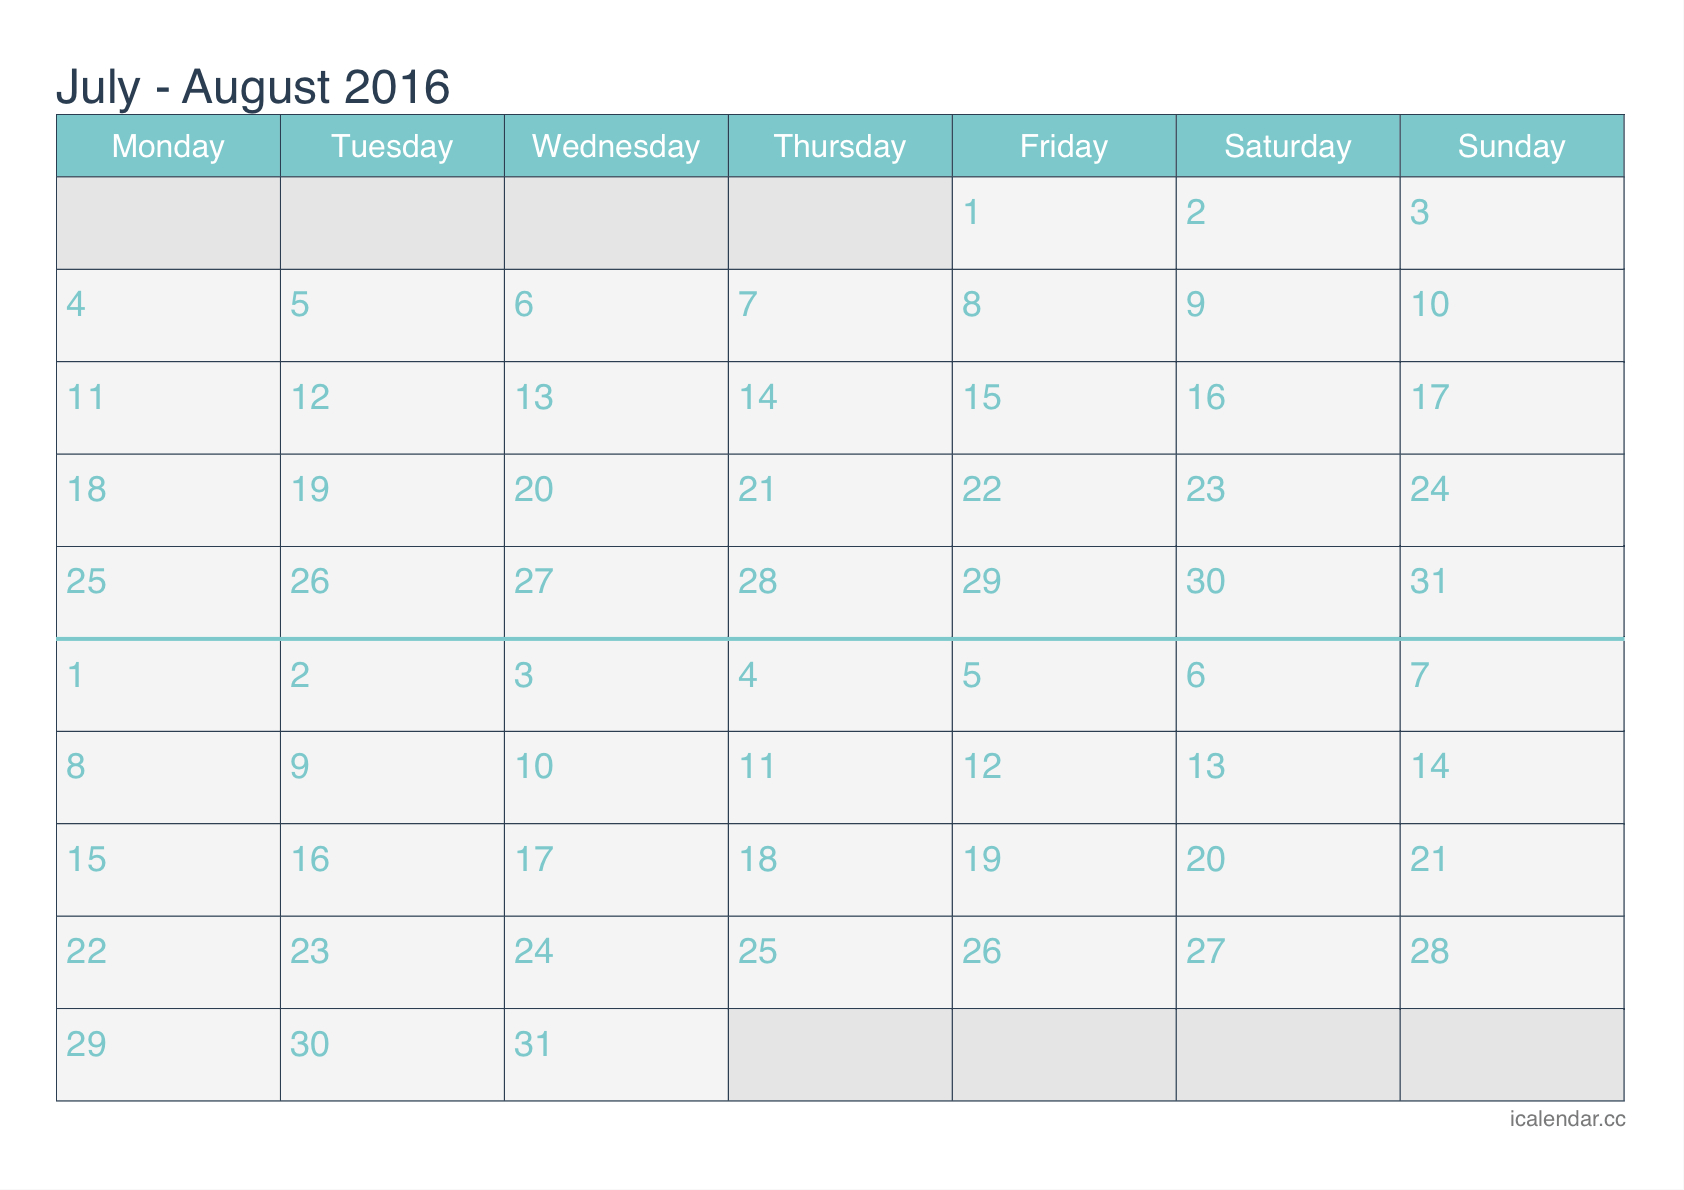 July And August 2016 Printable Calendar  Icalendars throughout July August 2016 Calendar